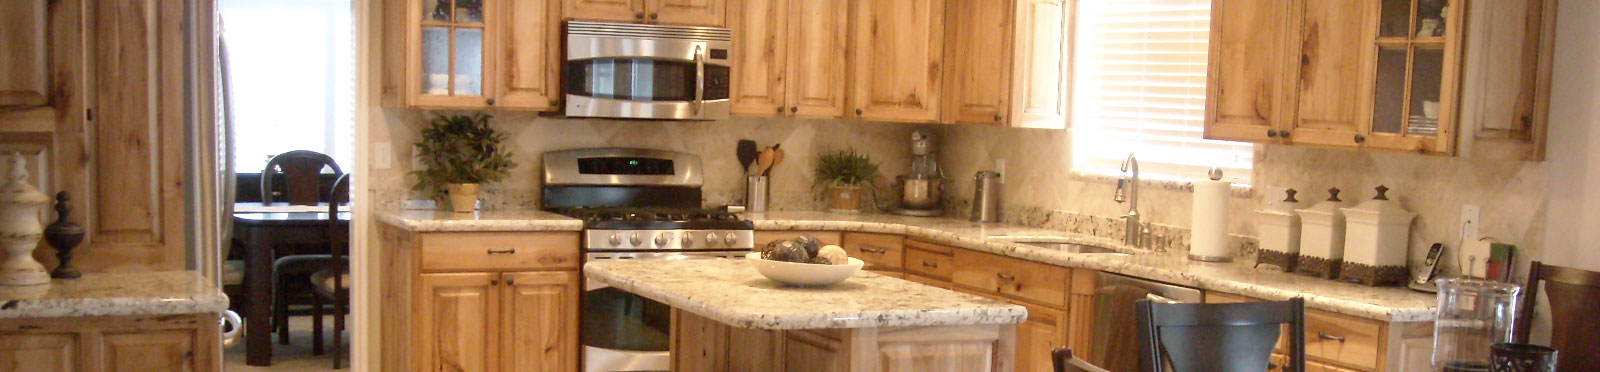 Kitchen Remodeling And Bathroom Remodeling For Nashville ...